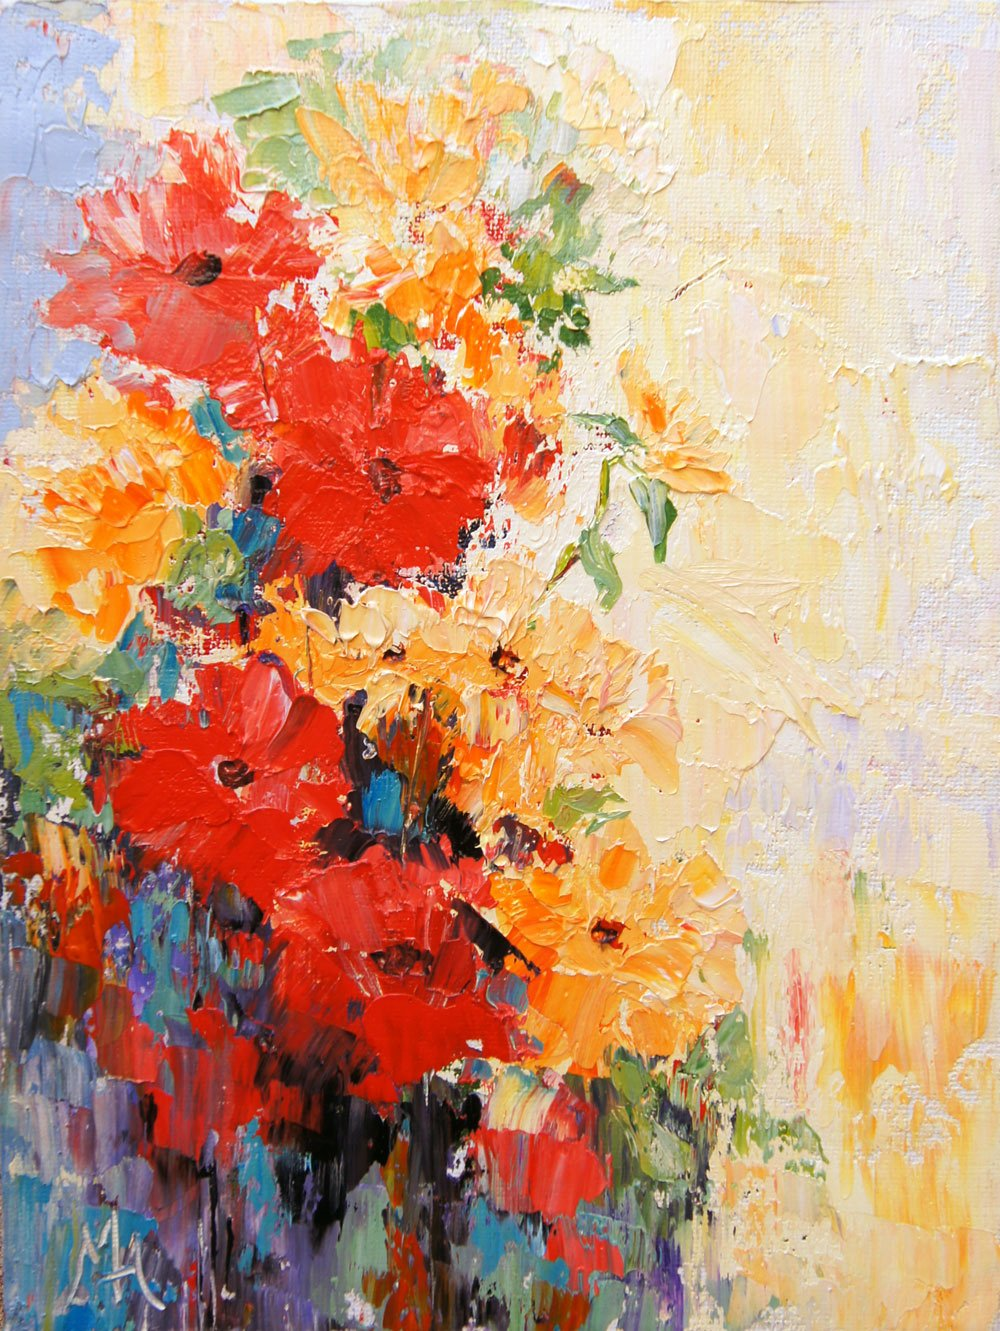 Abstract Painting Of Flowers New Artbymarion Joy Of Colour October 2015